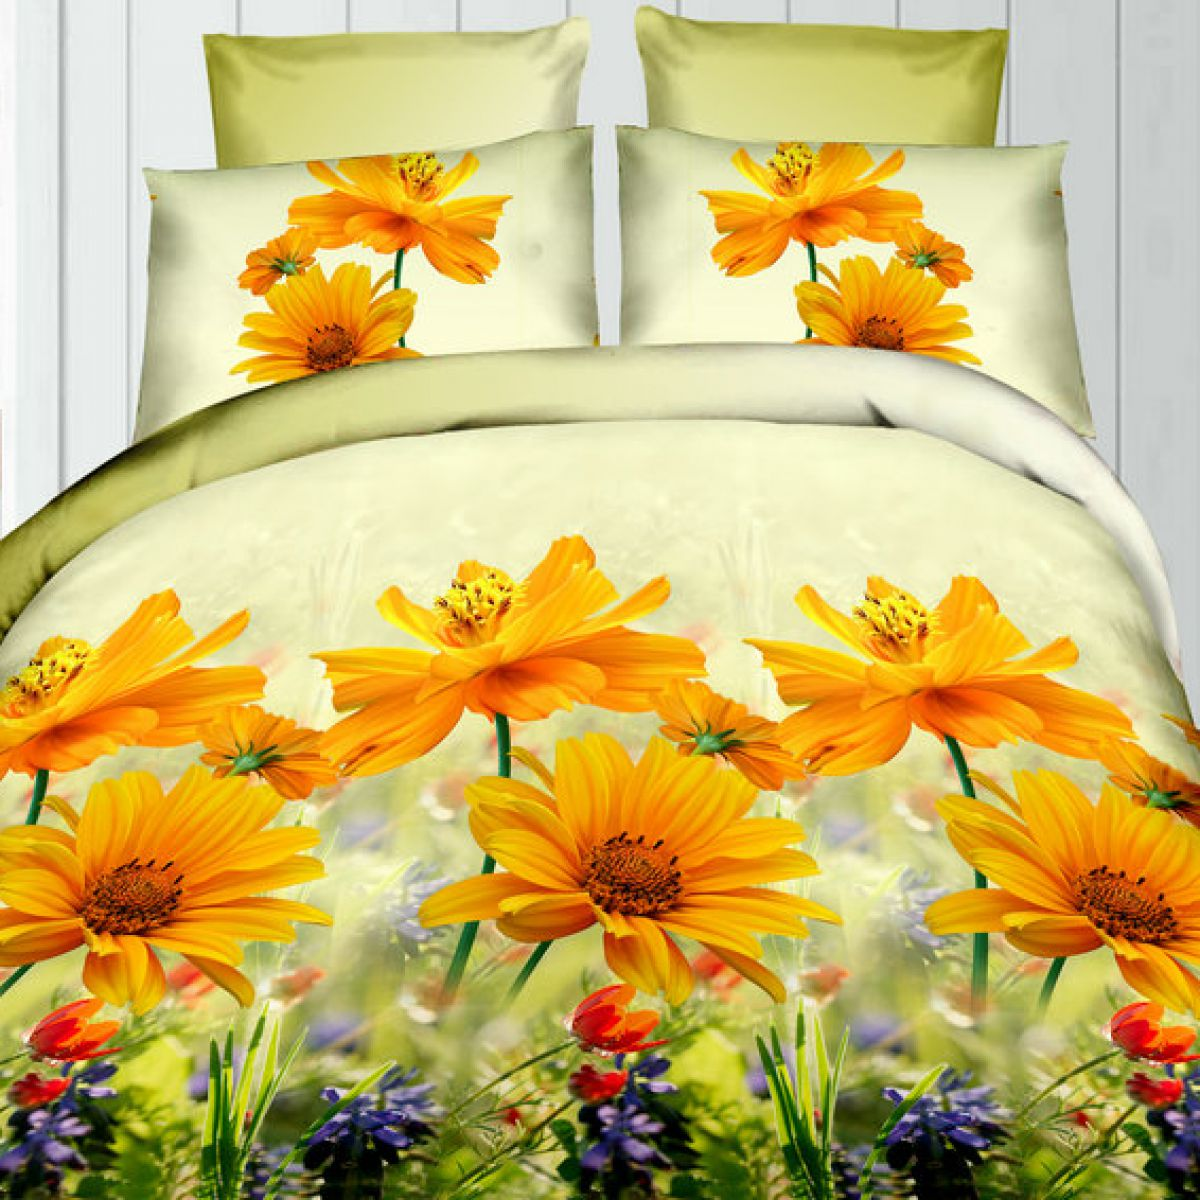 3D Beddings - Cotton World - FSC-368 - 160x200 cm - 3 pcs